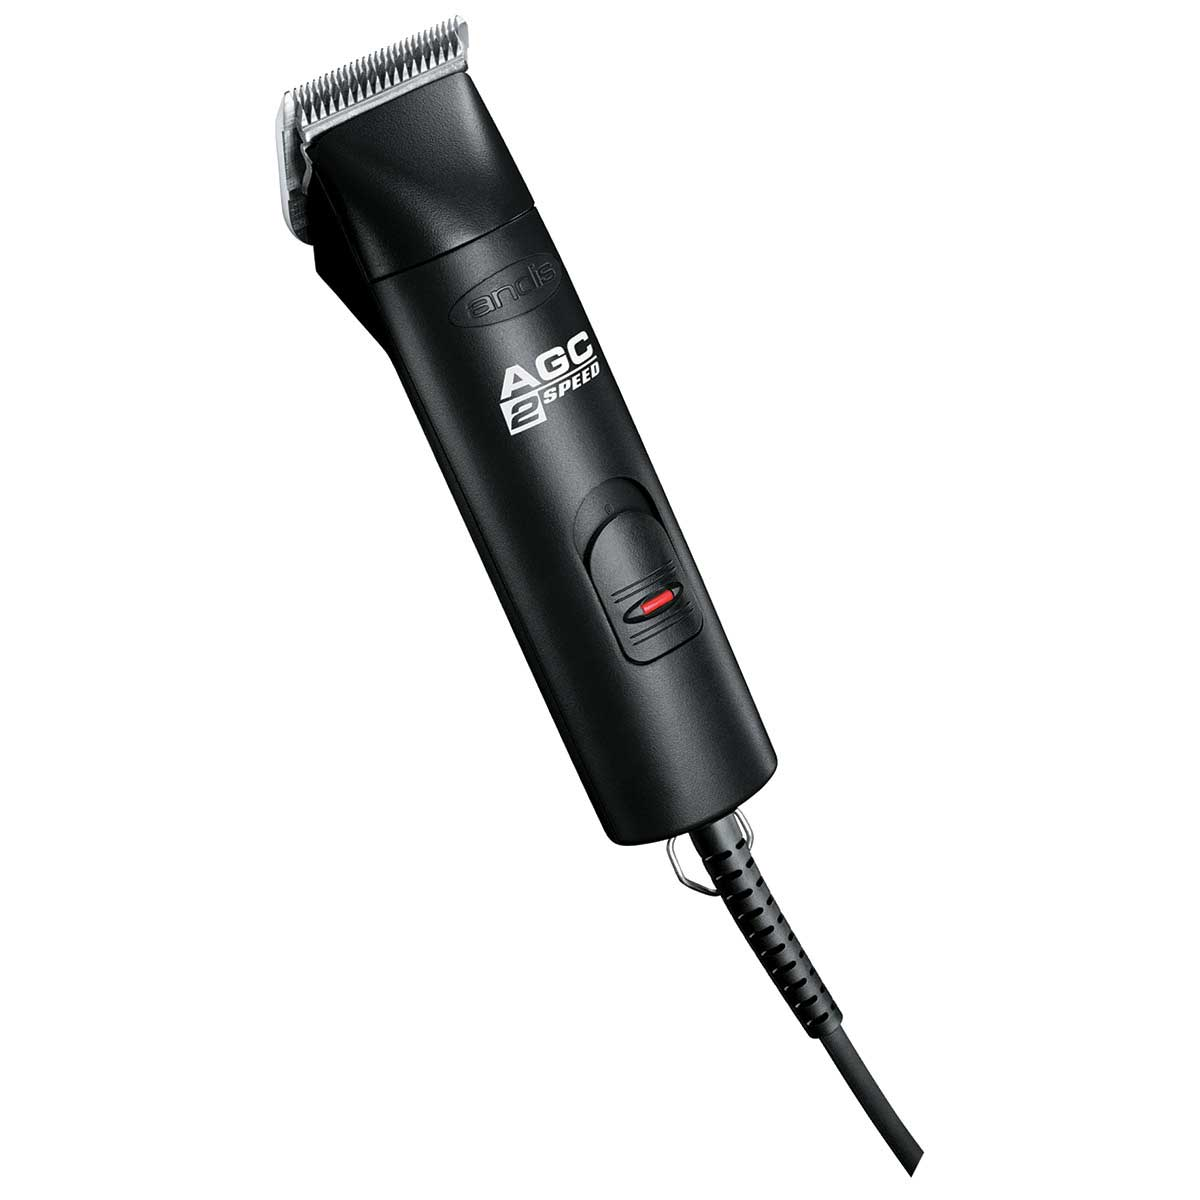 Andis 2 Speed AGC Grooming Clipper with 10 Dog Grooming Blade at Ryan's Pet Supplies